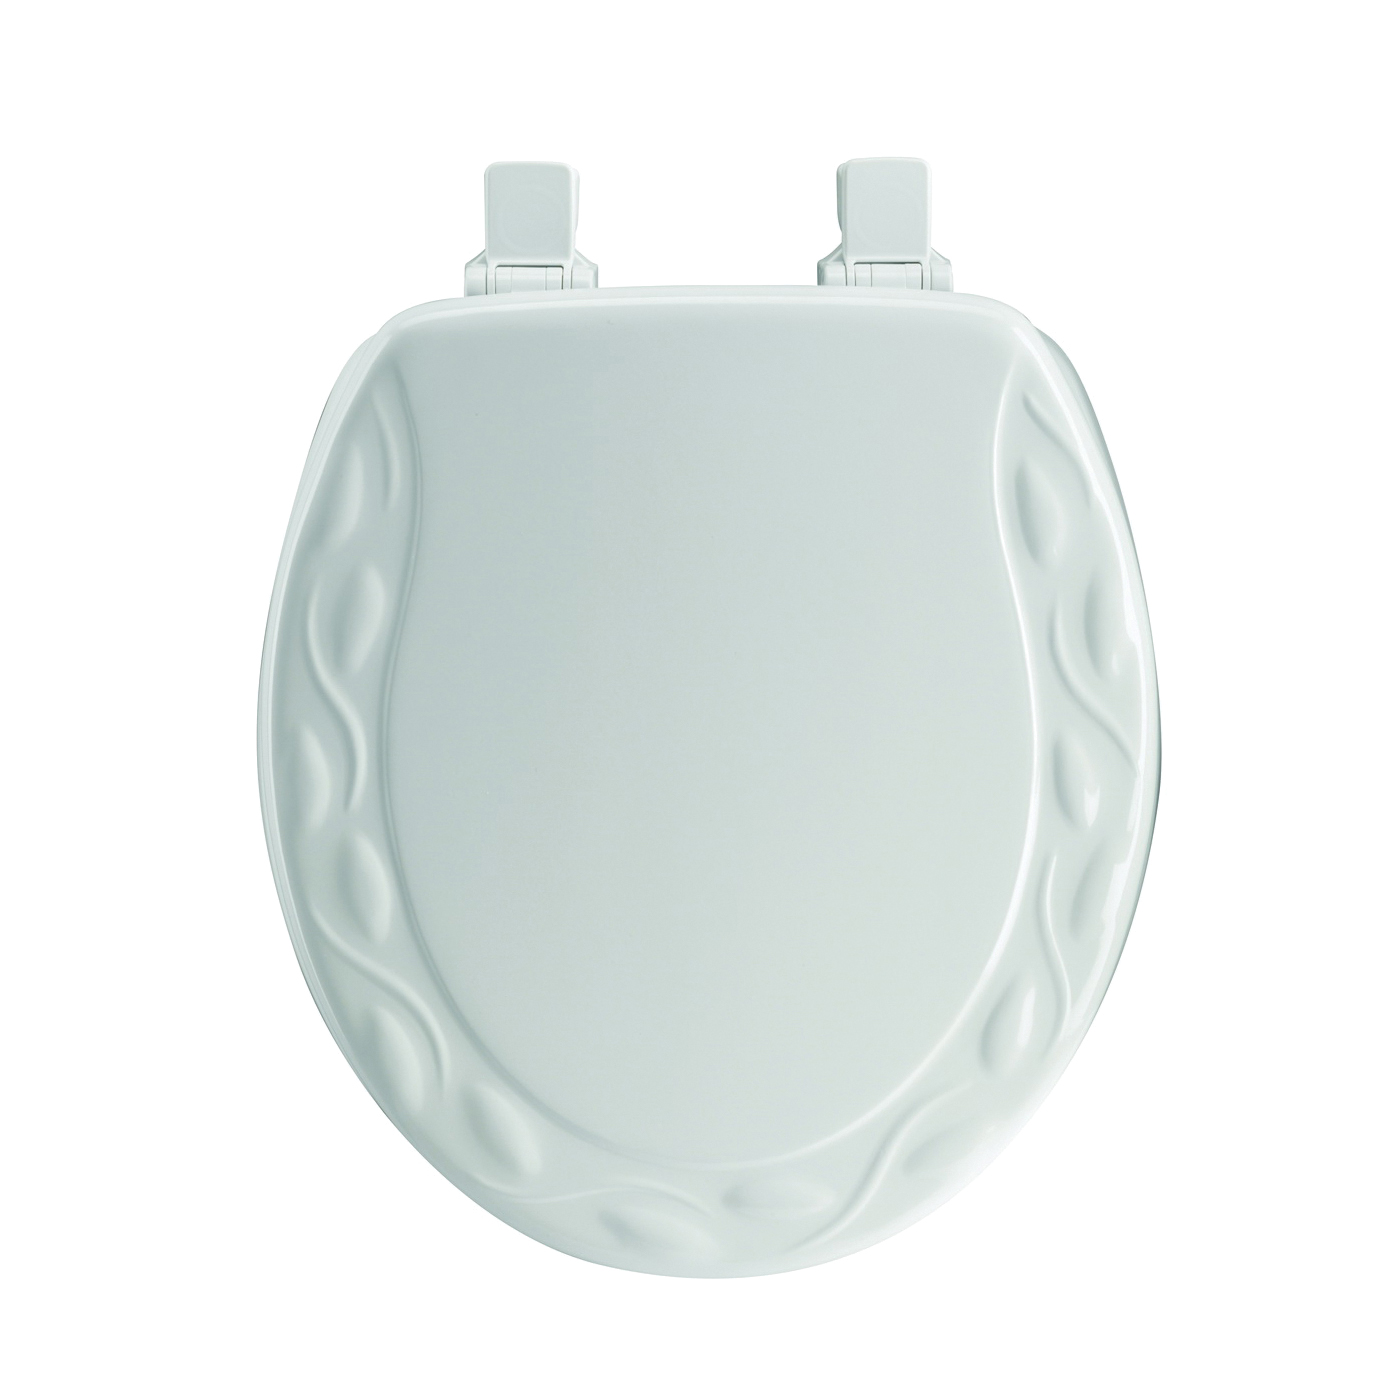 Picture of Mayfair 34EC-000 Toilet Seat, Round, Wood, White, Twist Hinge